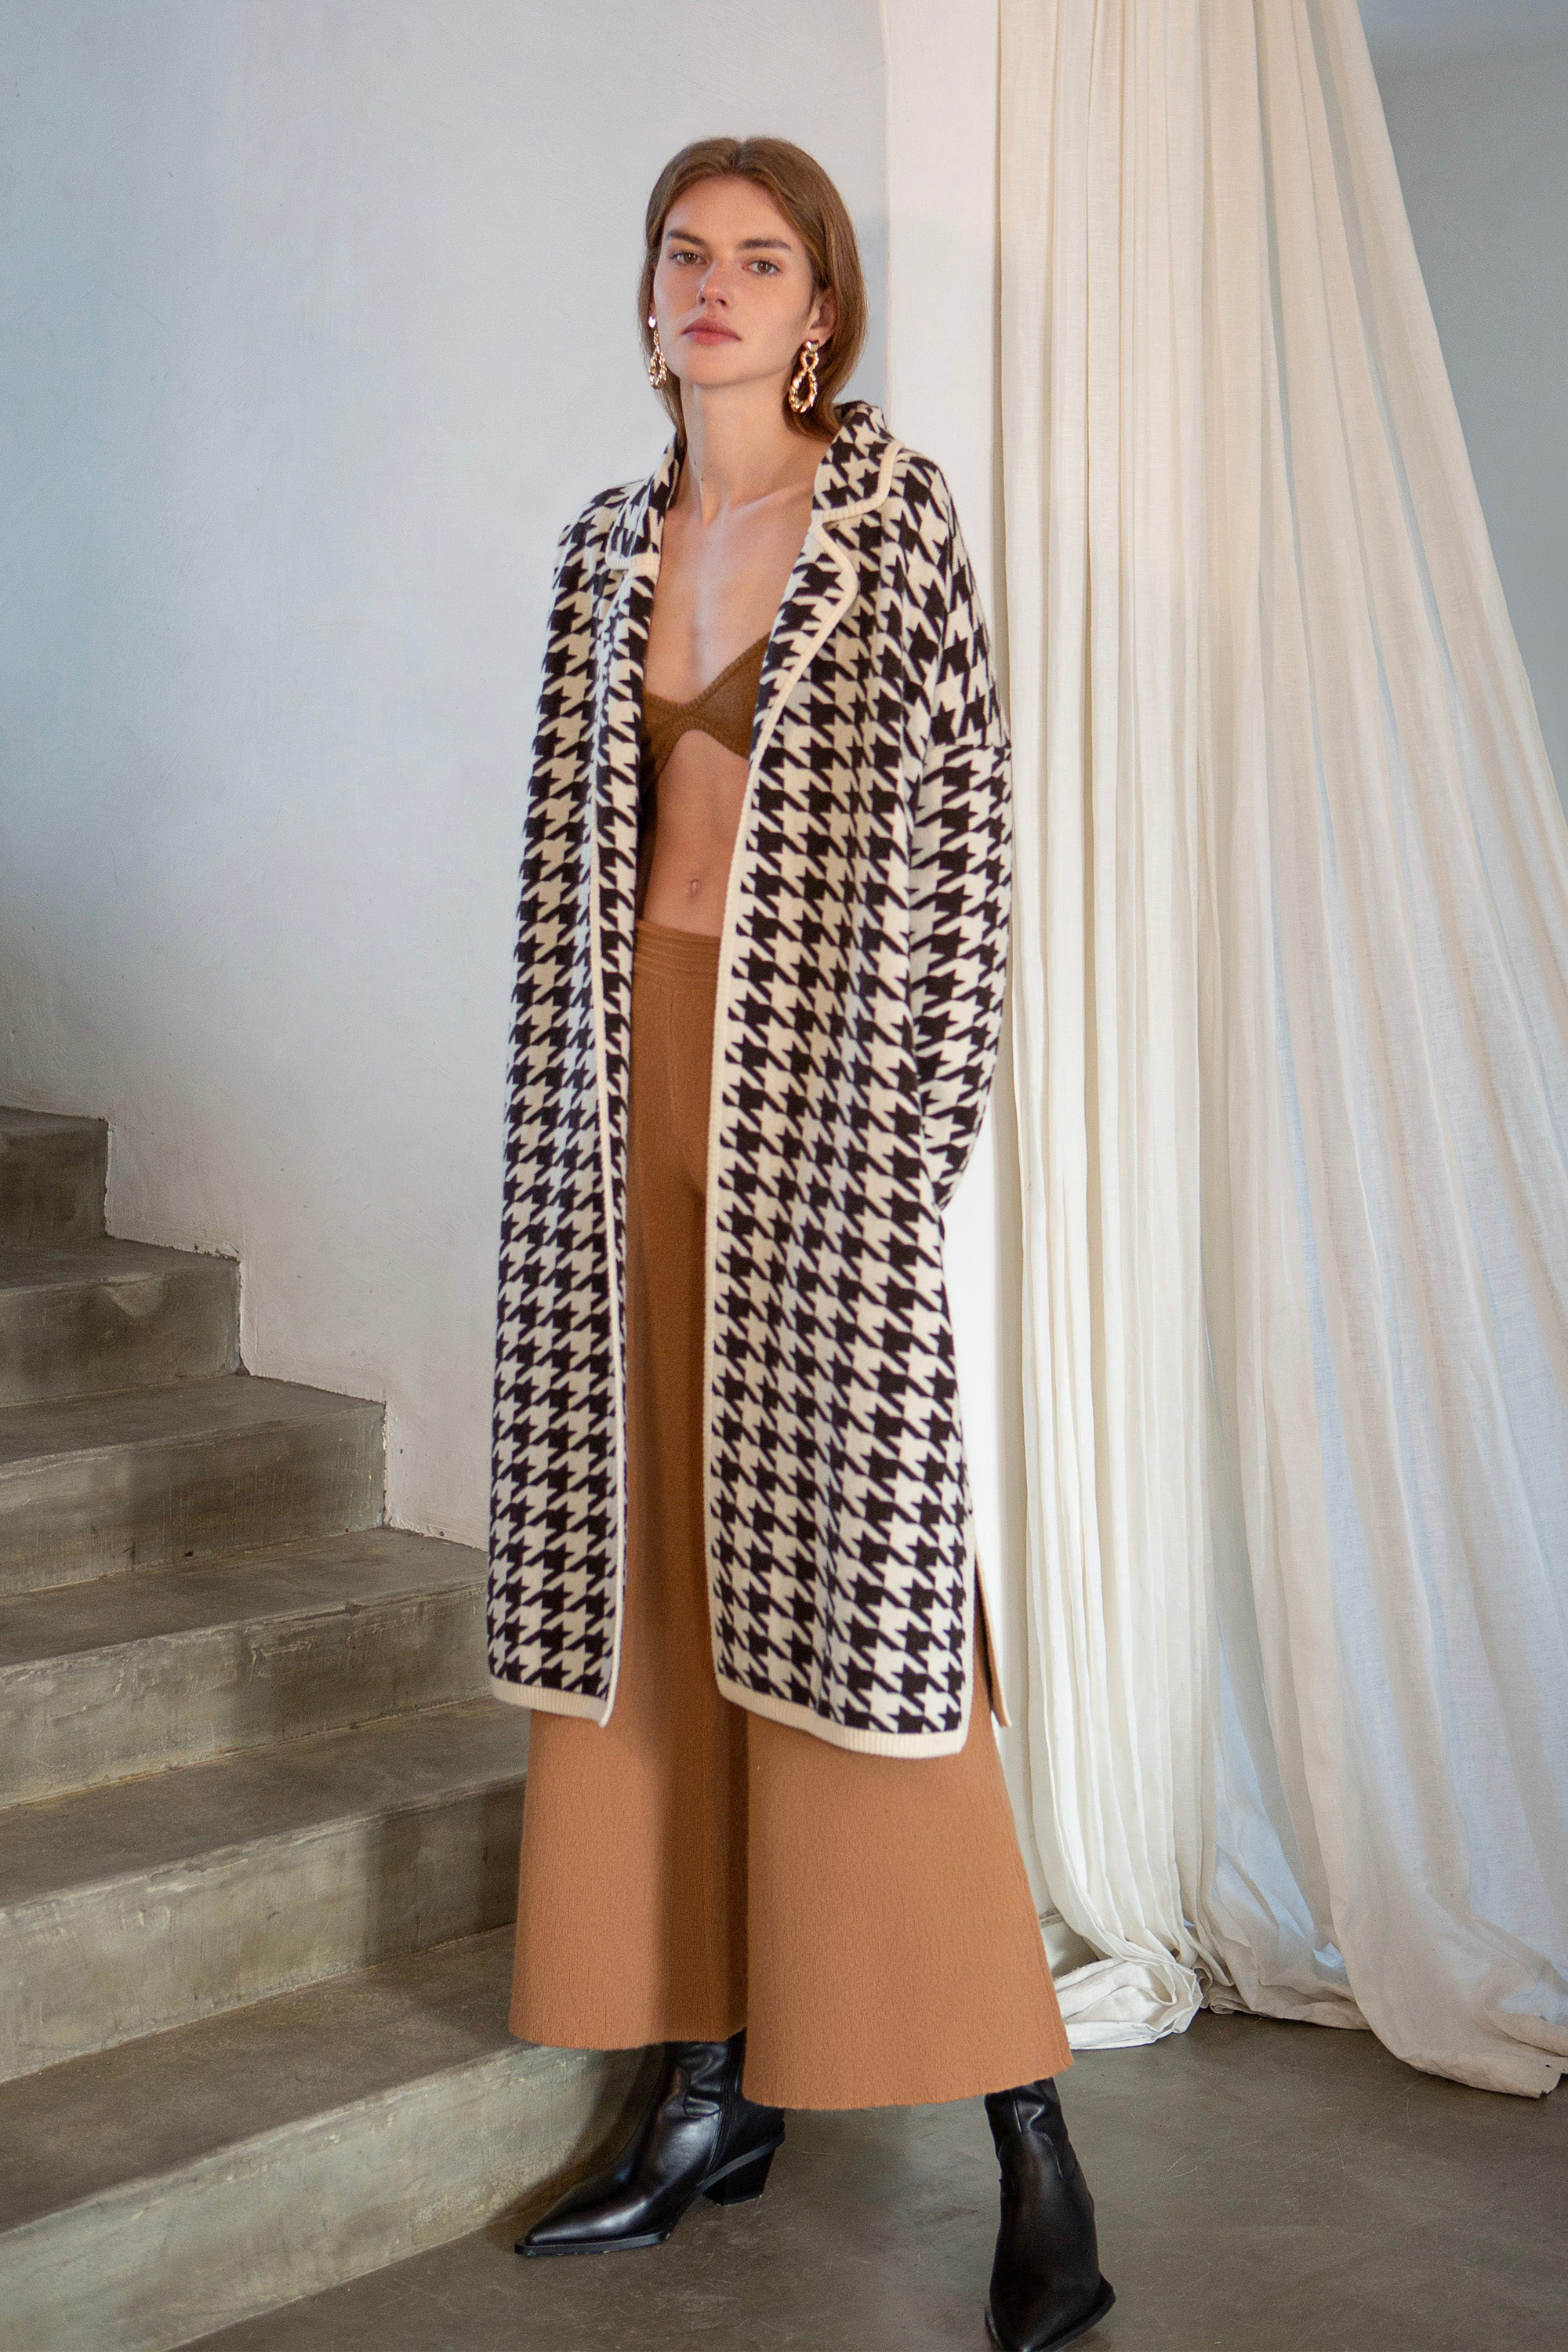 long sweater cardigan,houndstooth cardigan,houndstooth cardigan long,houndstooth cardigan sweater,houndstooth coat,houndstooth coat women,houndstooth long coat,houndstooth sweater coat,houndstooth pattern,cashmere cardigan,cashmere cardigan womens,cashmere cardigan long,cashmere coat,cashmere coat women,cashmere coat for women,long cashmere coat,cashmere cardigan swewater,cashmere cardigan sweater womens,